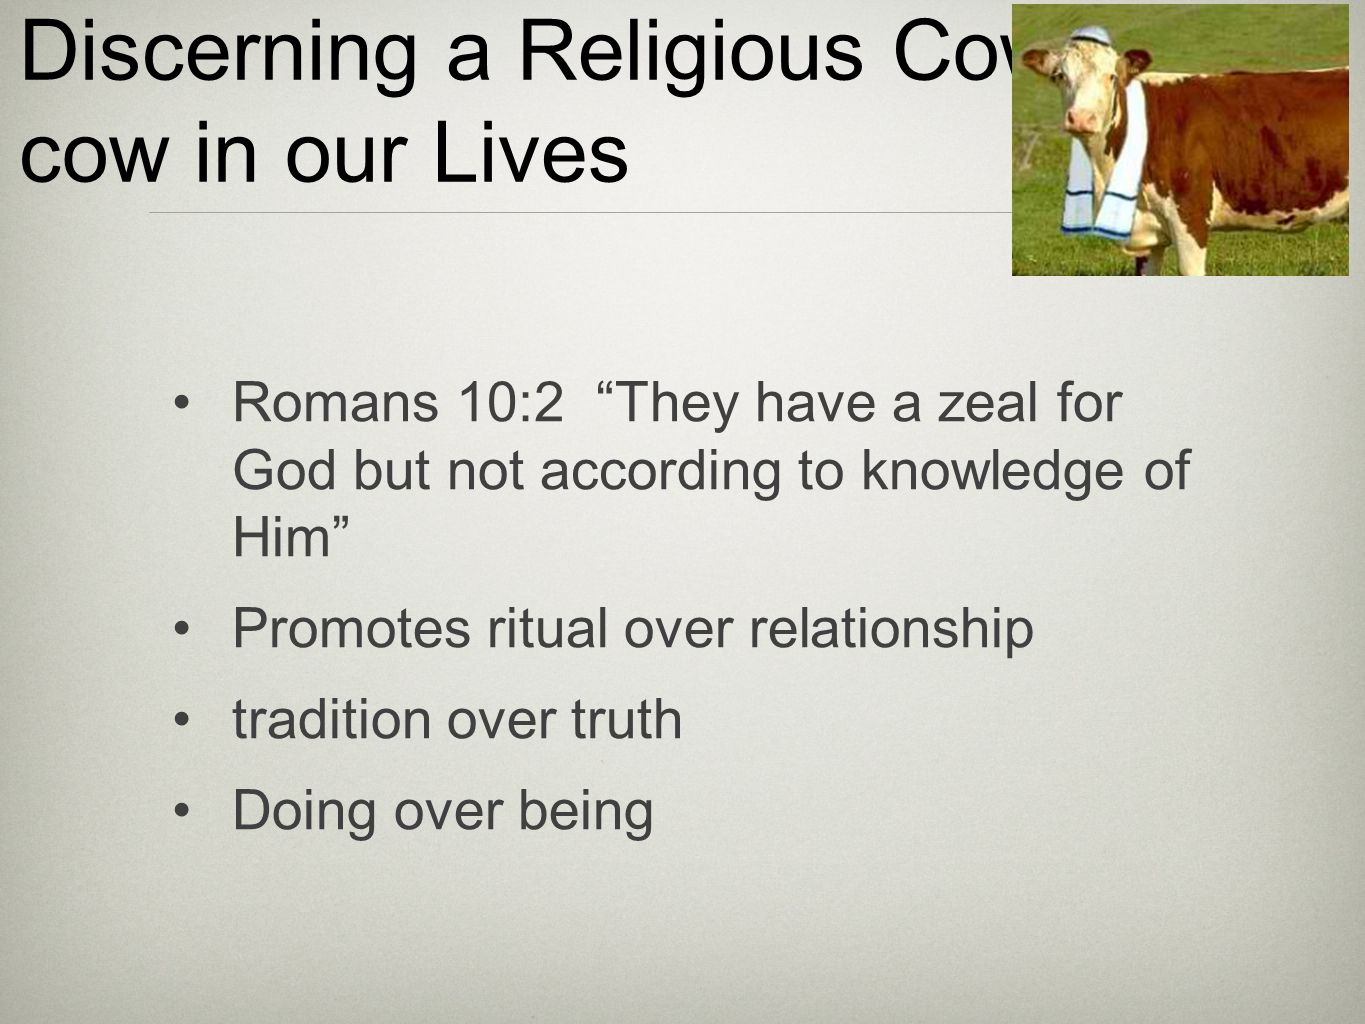 Discerning a Religious Cow cow in our Lives Romans 10:2 They have a zeal for God but not according to knowledge of Him Promotes ritual over relationship tradition over truth Doing over being